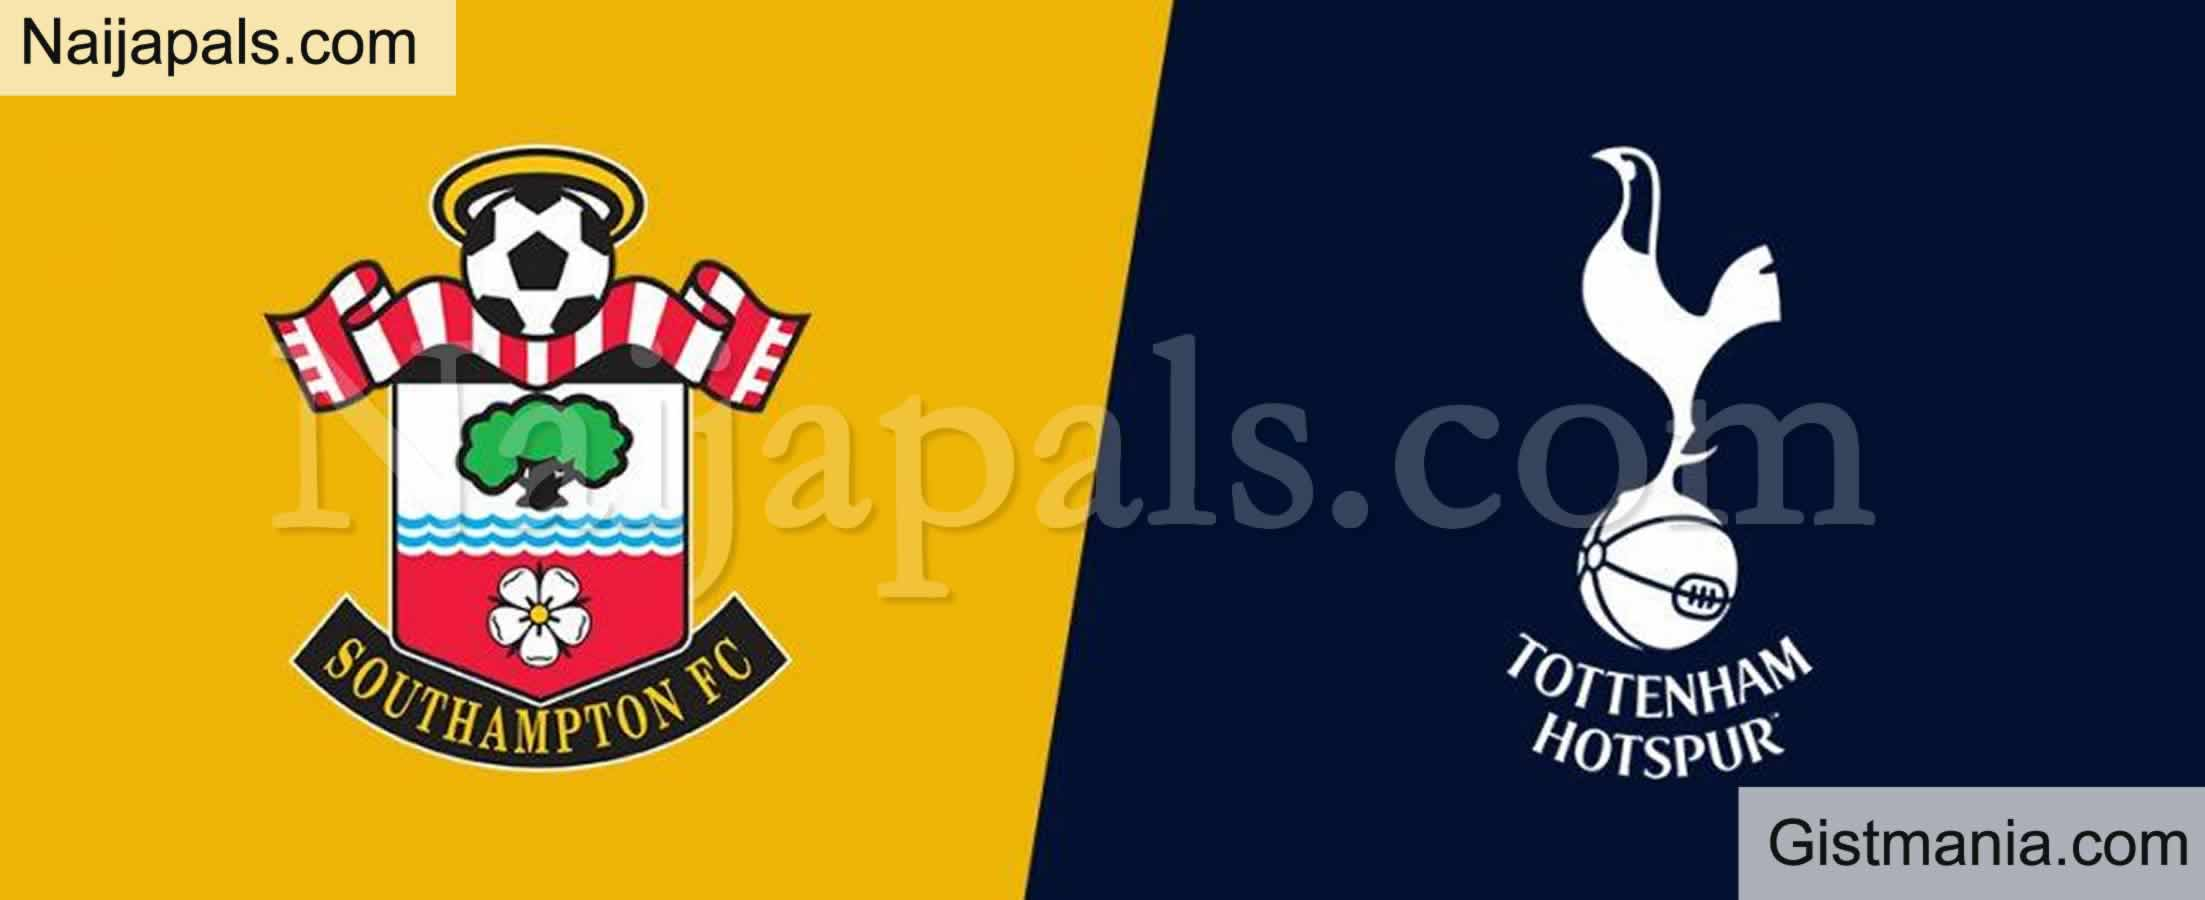 <img alt='.' class='lazyload' data-src='https://img.gistmania.com/emot/soccer.gif' /> <b>Southampton v Tottenham: English Premier League Match, Team News, Goal Scorers and Stats</b>